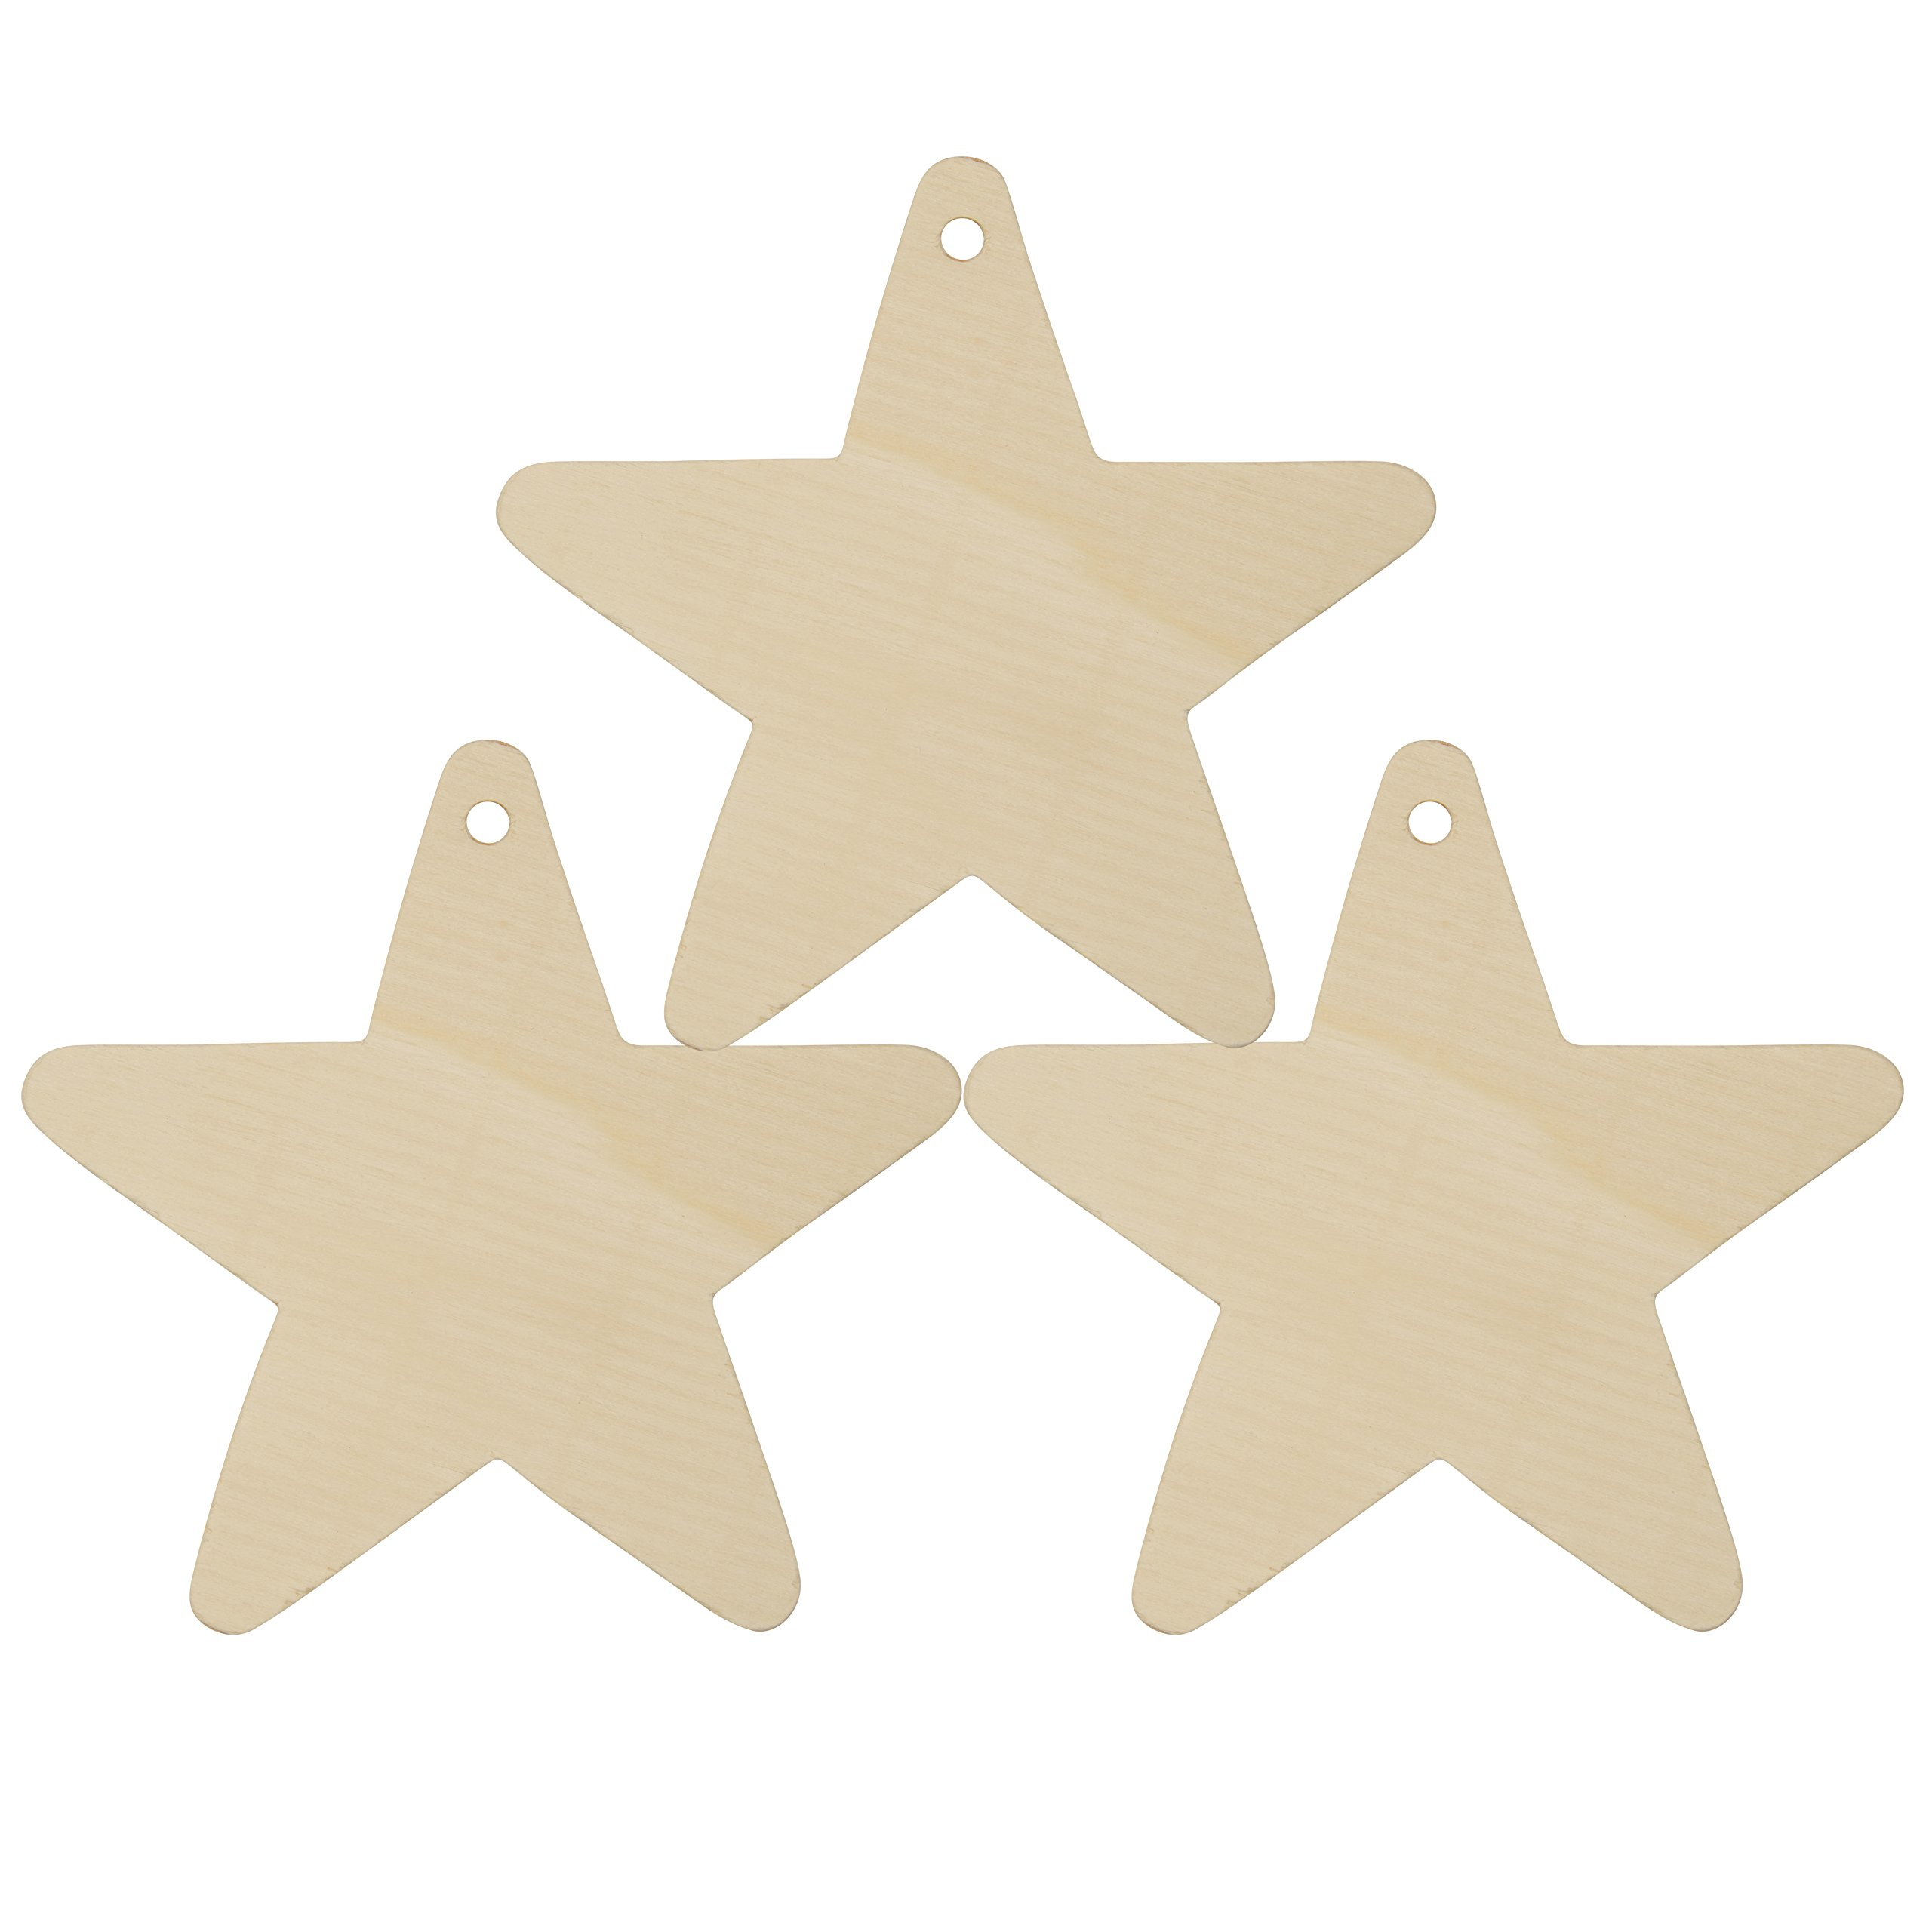 Wooden Star Christmas Tree Ornaments Unfinished - Package of 250- Ready To Be Painted And Decorated - By Woodpeckers